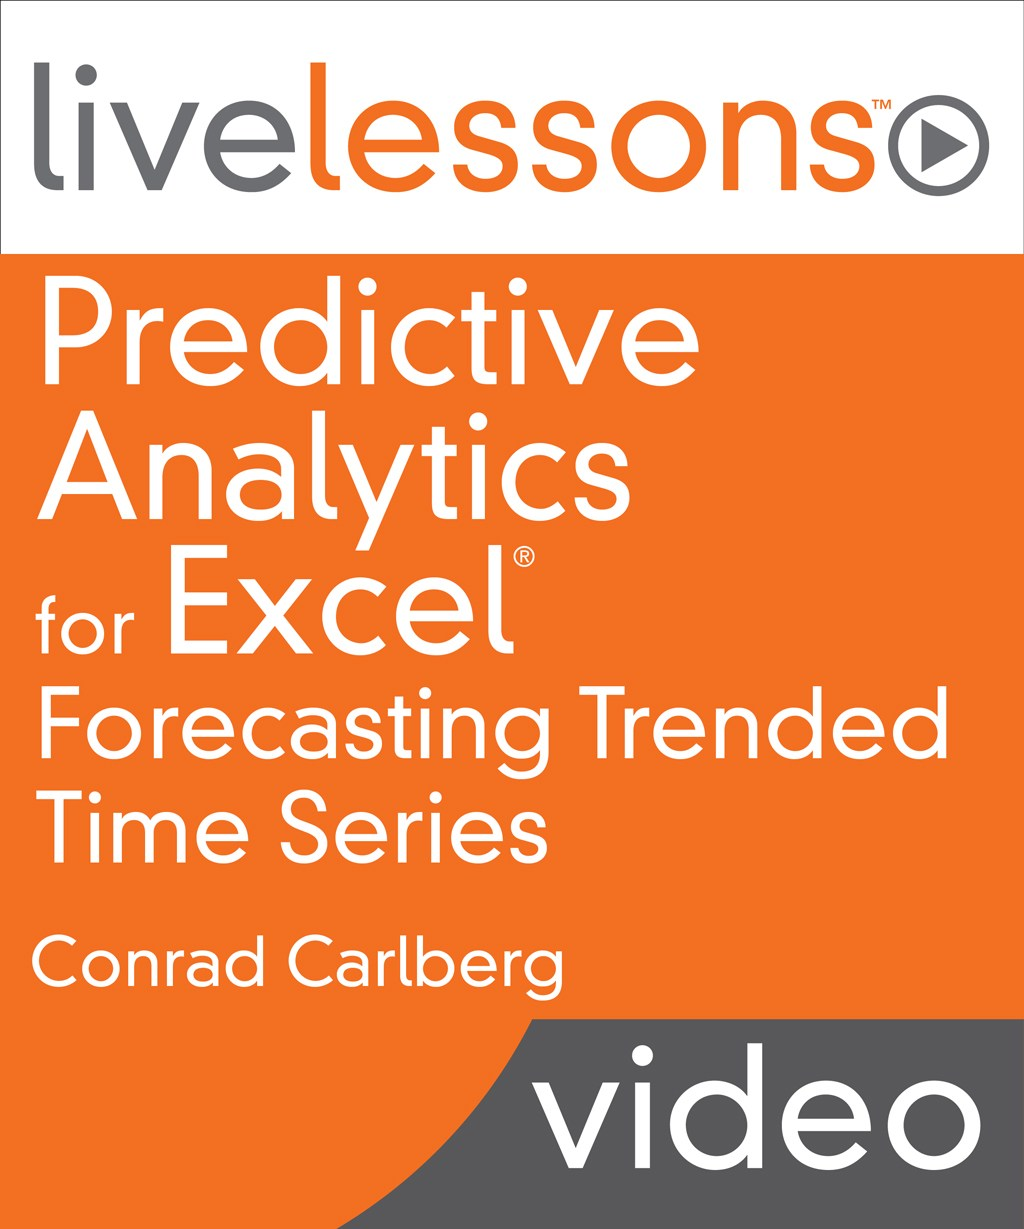 Lesson 7: The Forecast Equation for Trend, Downloadable Video